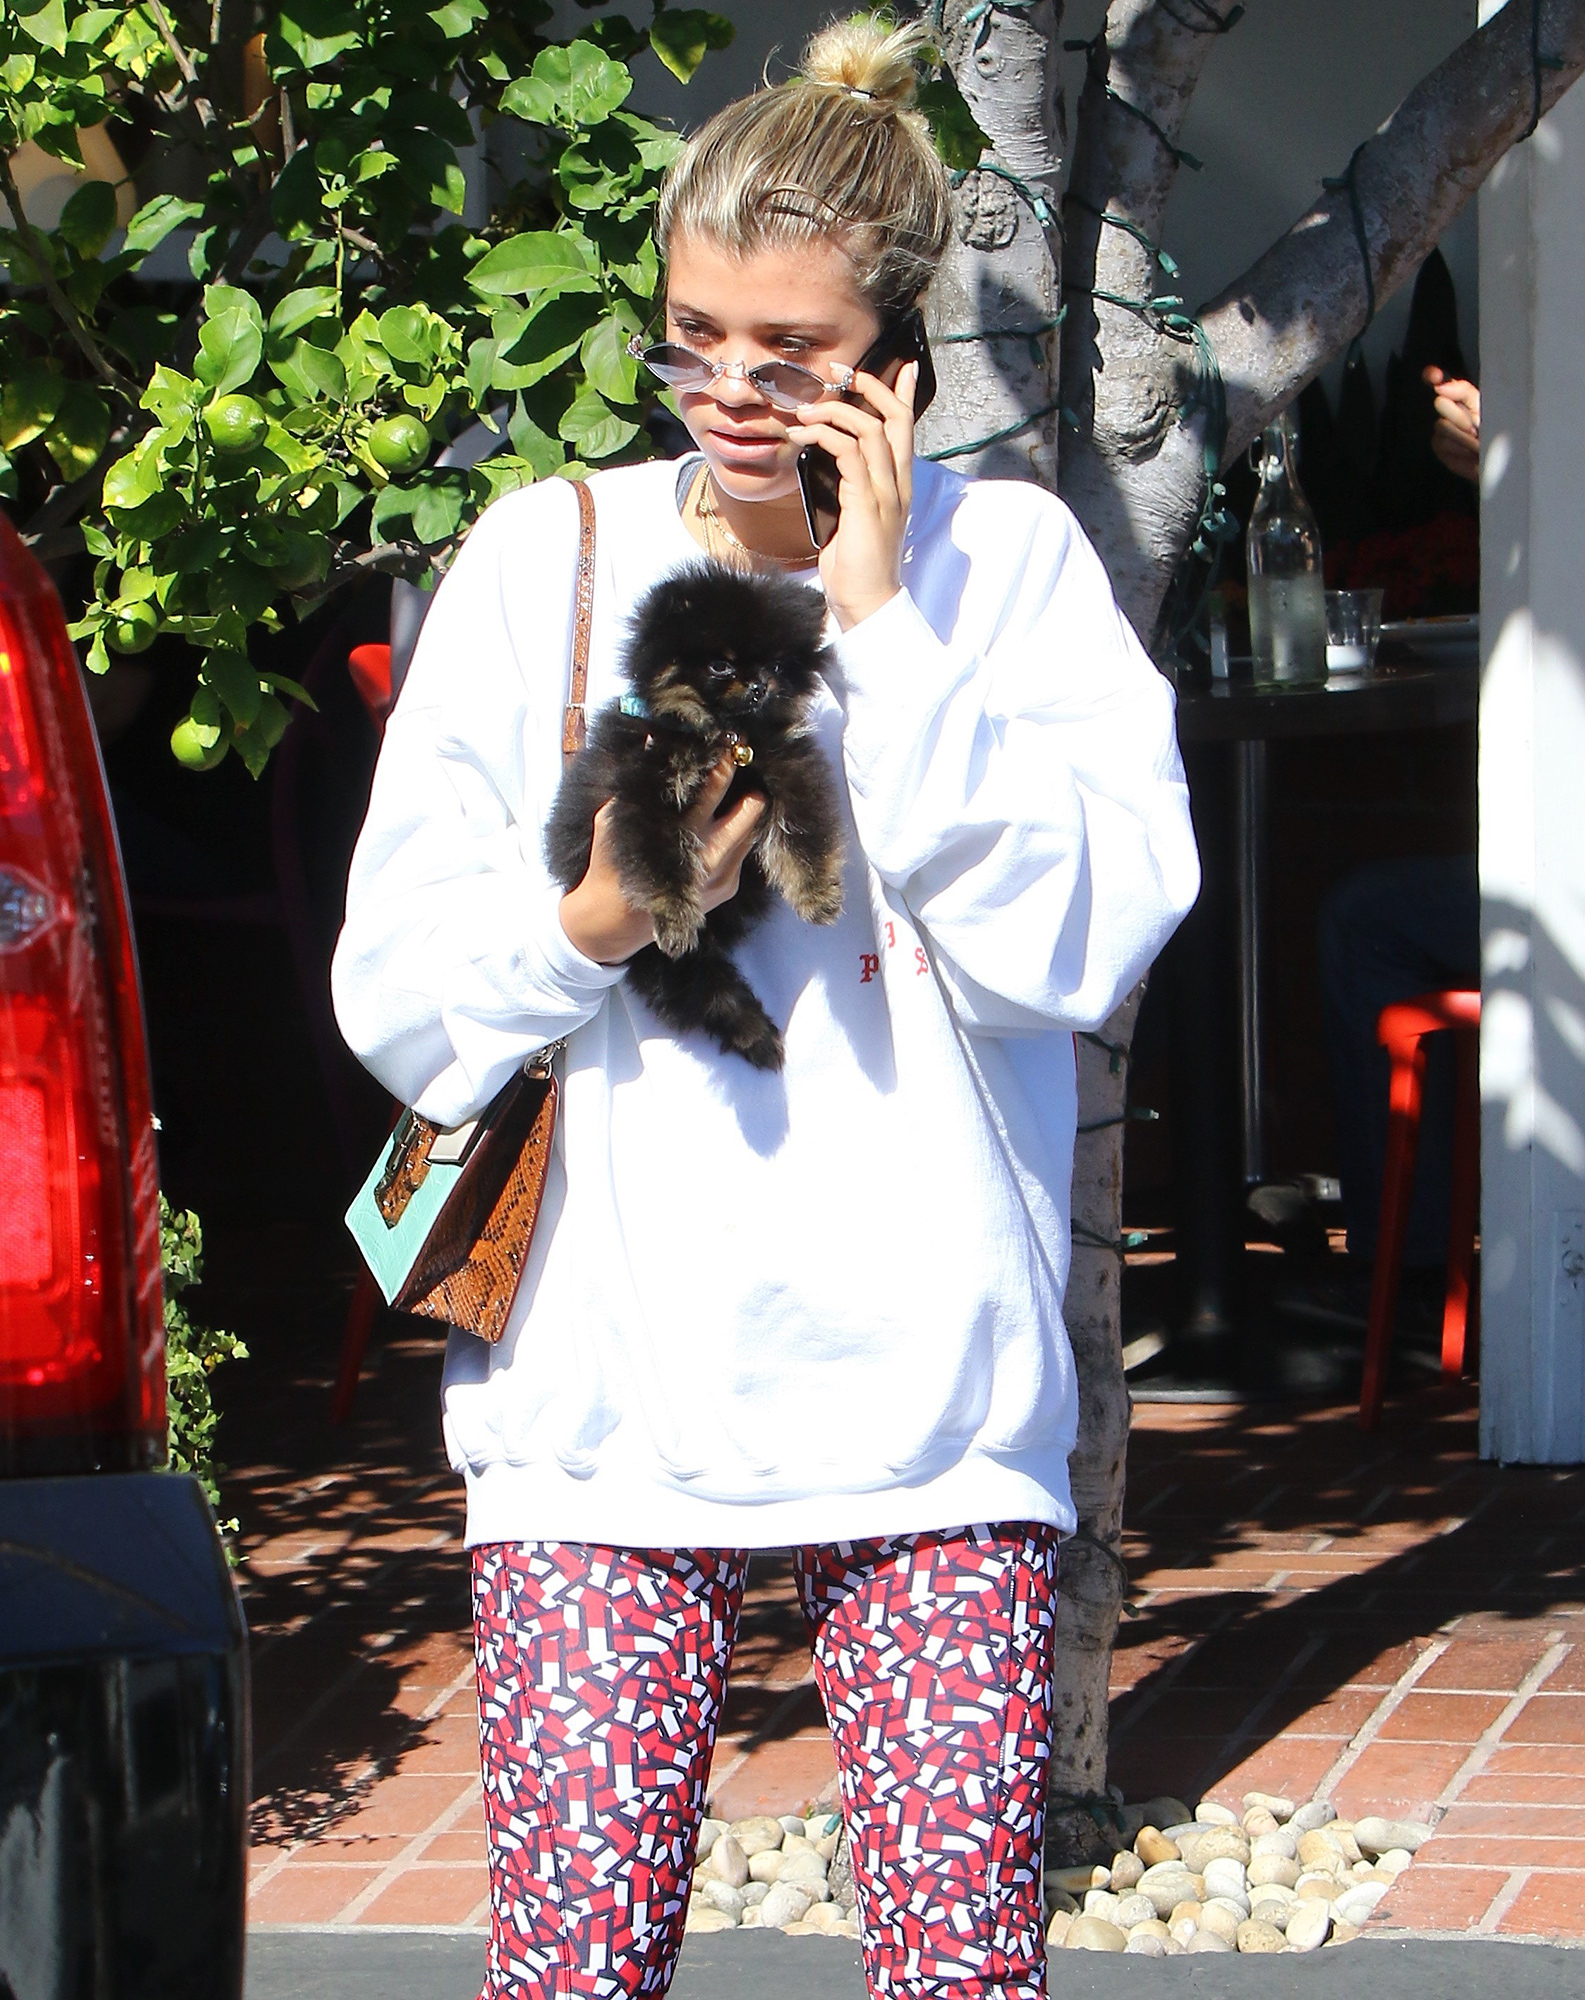 *EXCLUSIVE* Sofia Richie leaves Mauro's with a puppy in tow